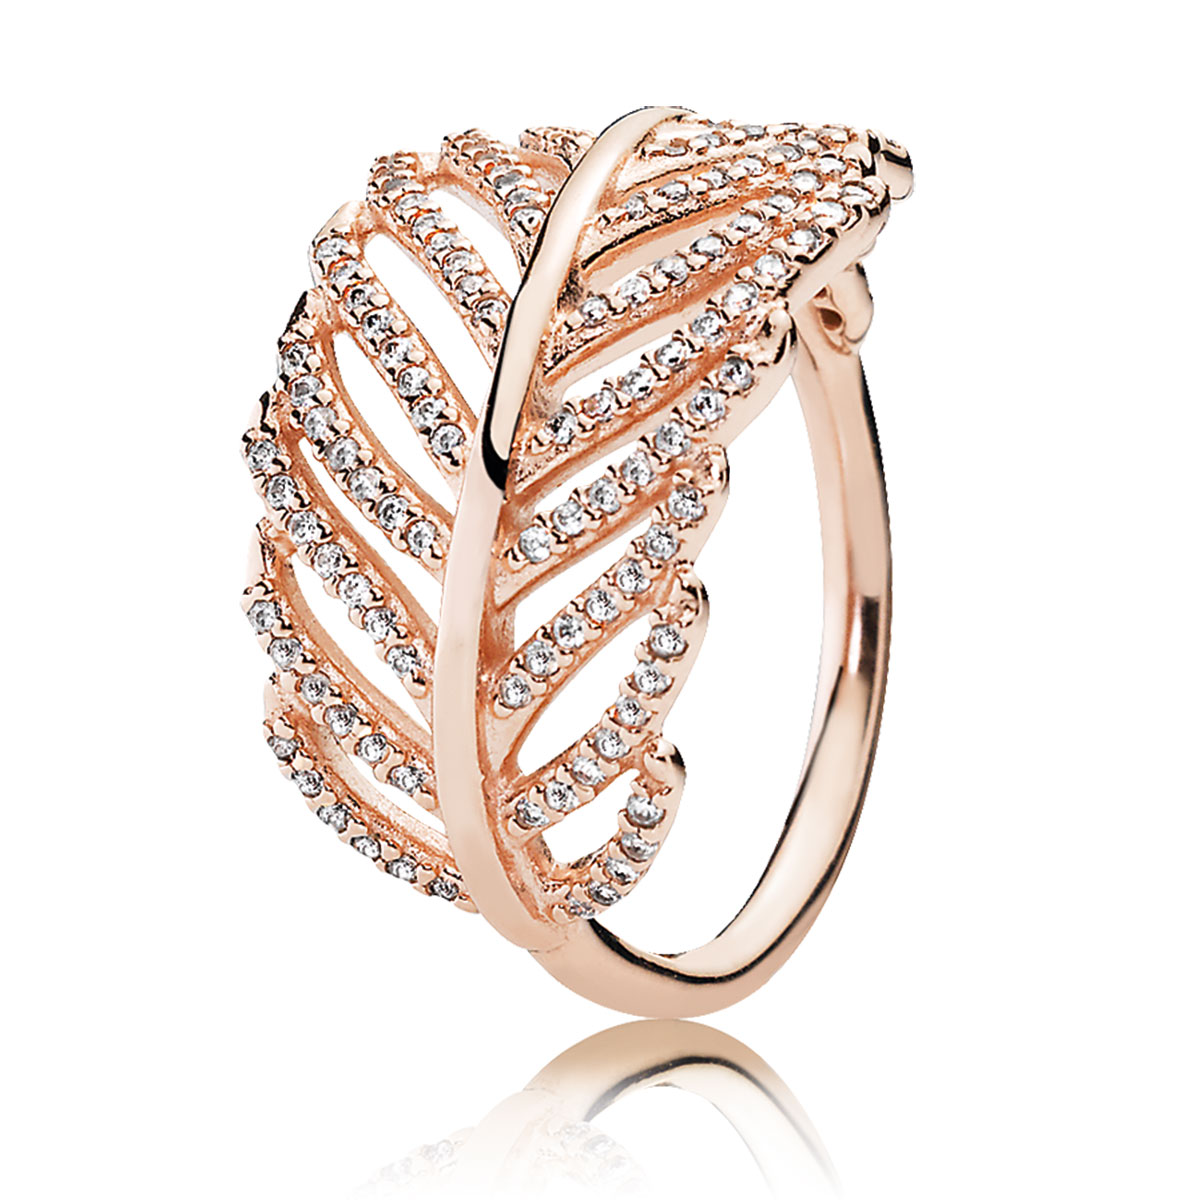 pandora rose light as a feather ring pancharmbraceletscom - Pandora Wedding Rings